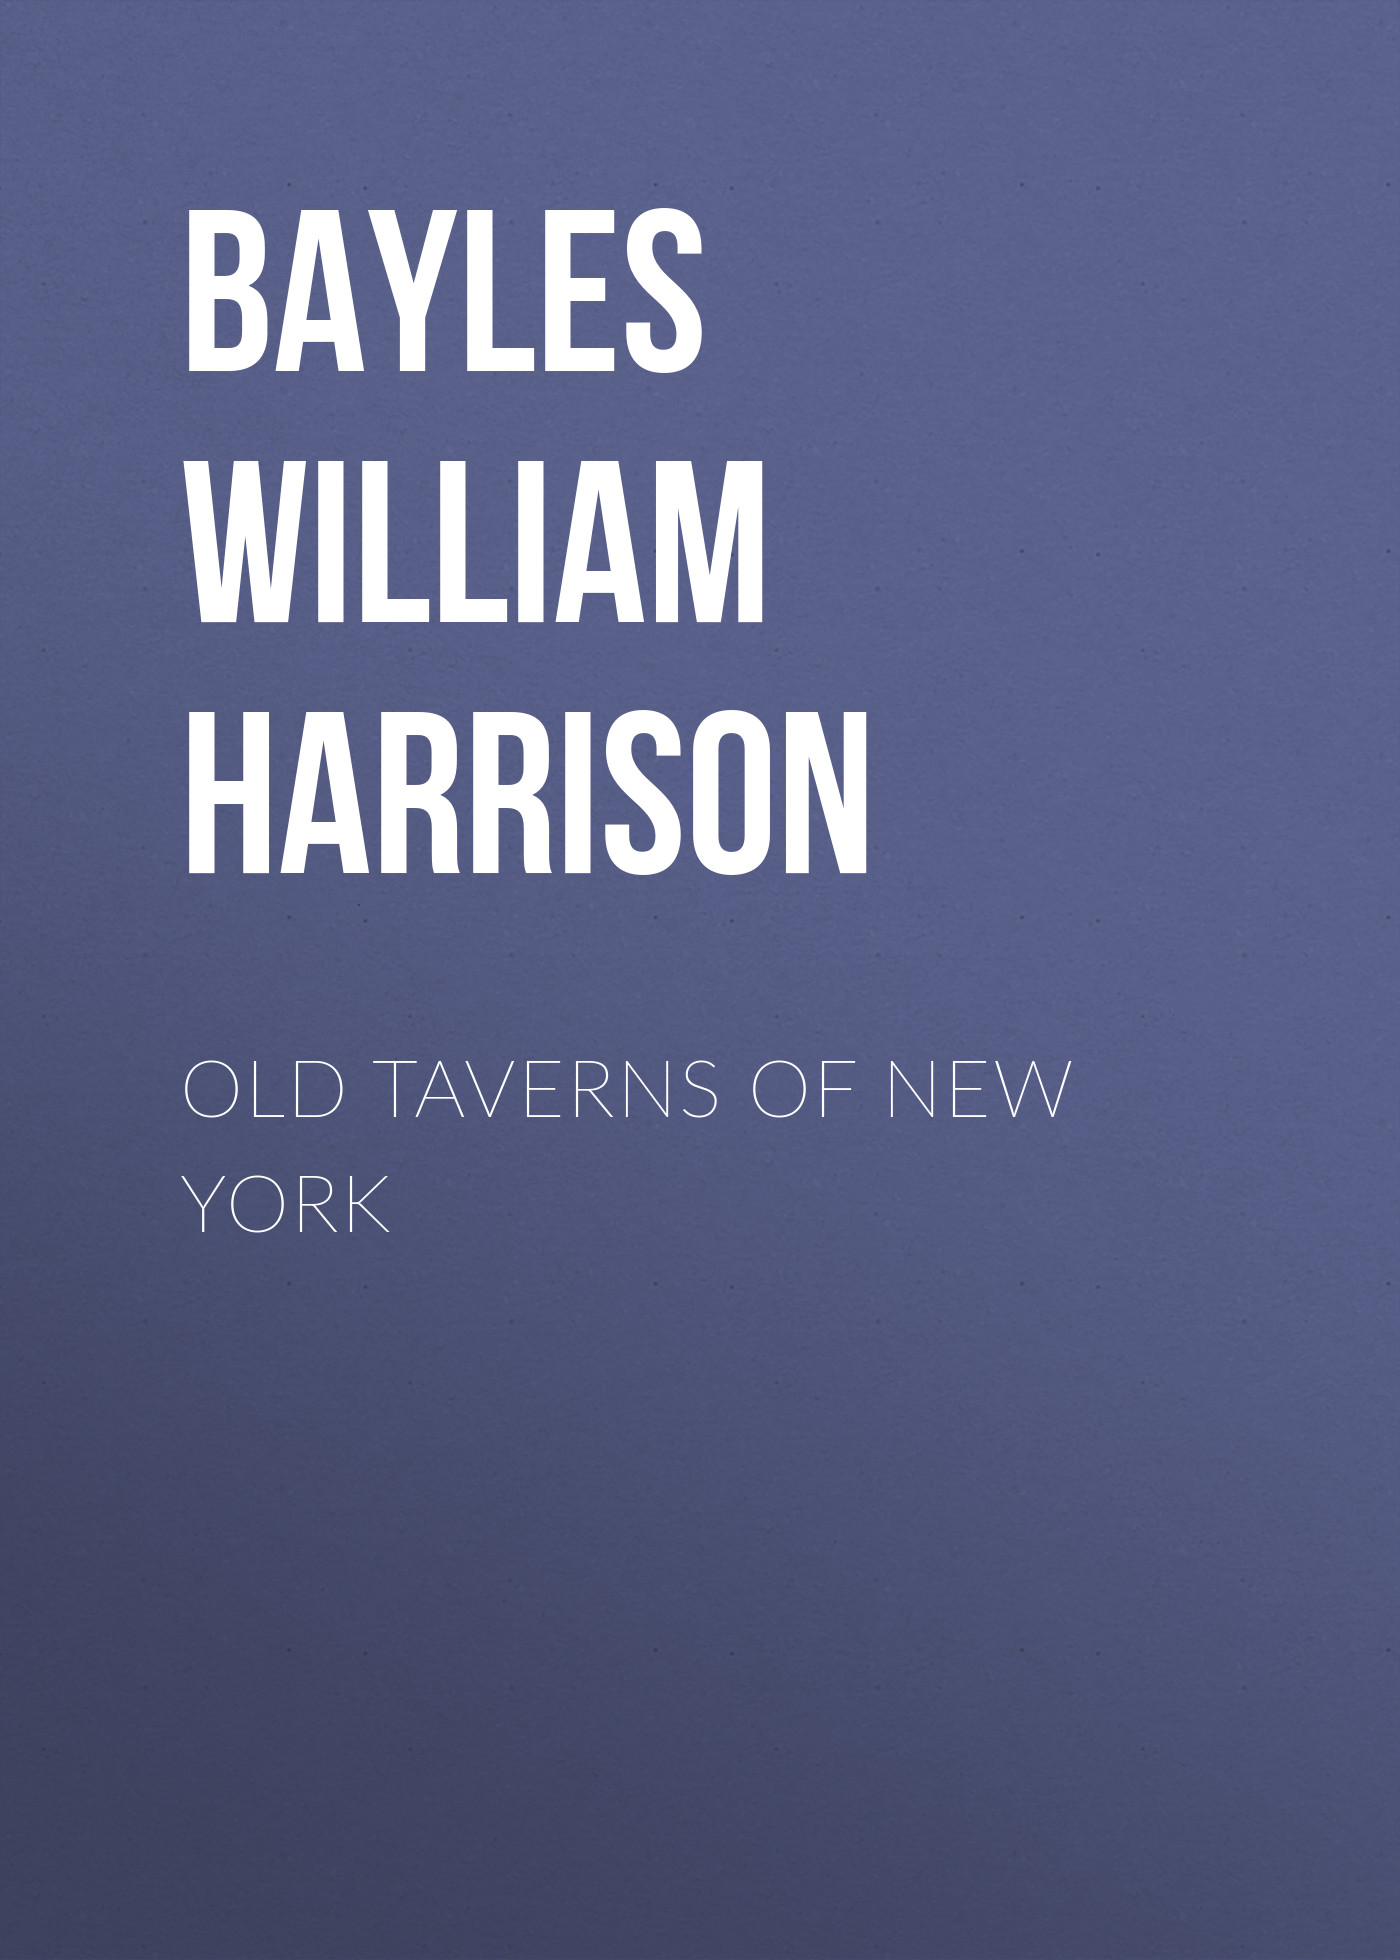 Bayles William Harrison Old Taverns of New York poems of new york